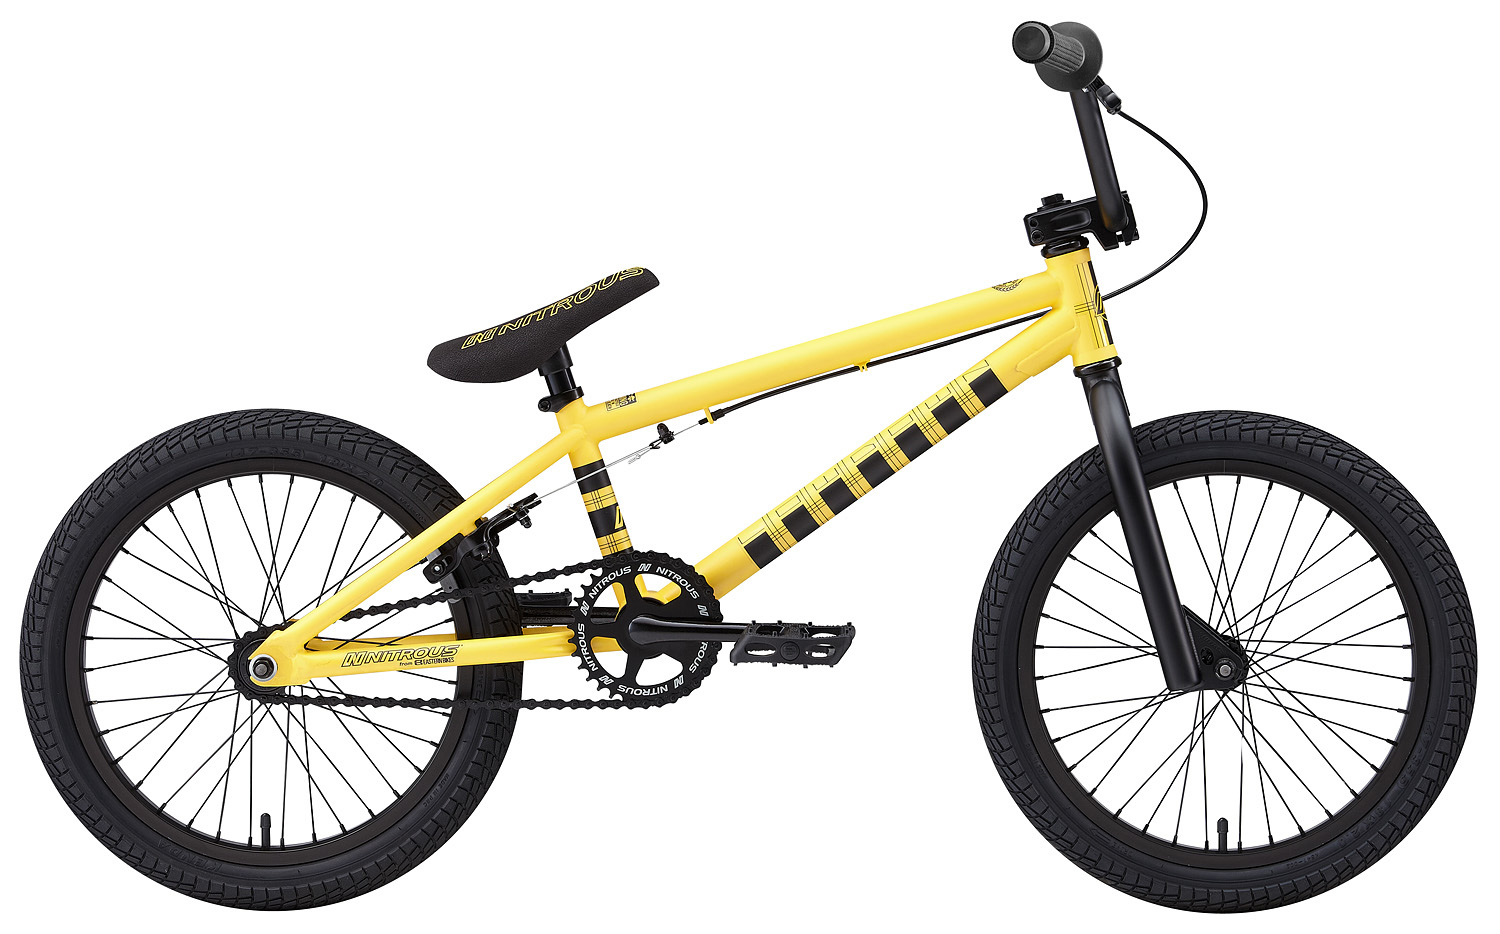 "BMX Key Features of the Nitrous Lowdown 120 BMX Bike: WEIGHT // 26.5 LBS (120) (24.0 lbs 118/116) COLORS // Black/Yellow, Yellow/Black TOP TUBE SIZE // 19.75"" GEARING // 25/9 Micro-drive (120) 33/14 (118) 33/16 (116) FRAME // Lowdown Hi-Tensile Strength 1020 Steel Frame w/ lifetime upgrade policy** FORK // Lowdown Hi-Tensile Strength 1020 Steel BARS // 7.75""x 27.5"", 1? Upsweep, 12? Backsweep (Hi-Ten Bars on 118 & 116) HEADSET // 1-1/8"" Aheadset BB // American Loose Ball Bearing PEDALS // Wellgo Plastic Pedals GRIPS // Eastern Wiz Signature Grip (pg. 27) (Krayton rubber on 118 & 116) STEM // Forged Alloy Front Load SPROCKET // 25T(120), 33T(118 & 116) Steel w/ Nitrous Graphic CRANKS // Forged & Heat-Treated 1-Piece Cro-Mo Cranks (light & strong) SEAT // Nitrous Logo 1-Piece Seat/Alloy Post Combo TIRES // LHR Multi-Surface , 20"" x 2.20""(120) Kenda, 18"" x 2.0"" (118) Kenda, 16"" x 2.25"" (116) REAR HUB // 36H, Cassette Hub, 9-tooth driver, 14mm Axle Studs (118 - 36H, 3/8"" Loose Ball Bearing) (116 - 36H, 3/8"" Loose Ball Bearing 16T coaster brake hub) FRONT HUB // 36H, 3/8"" Loose Ball Bearing RIMS // Alloy 36 Hole REAR BRAKES // Forged Alloy U-Brake / Straight Cable / Forged Alloy lever, Designed for U-Brakes (Coaster Brake on 116) FREEWHEEL // 9-Tooth Driver (120) Lida 14T(118) CHAIN // KMC Z510, KMC Z410 (116) SEAT CLAMP // Nitrous Locker Forged Alloy Clamp - $249.95"